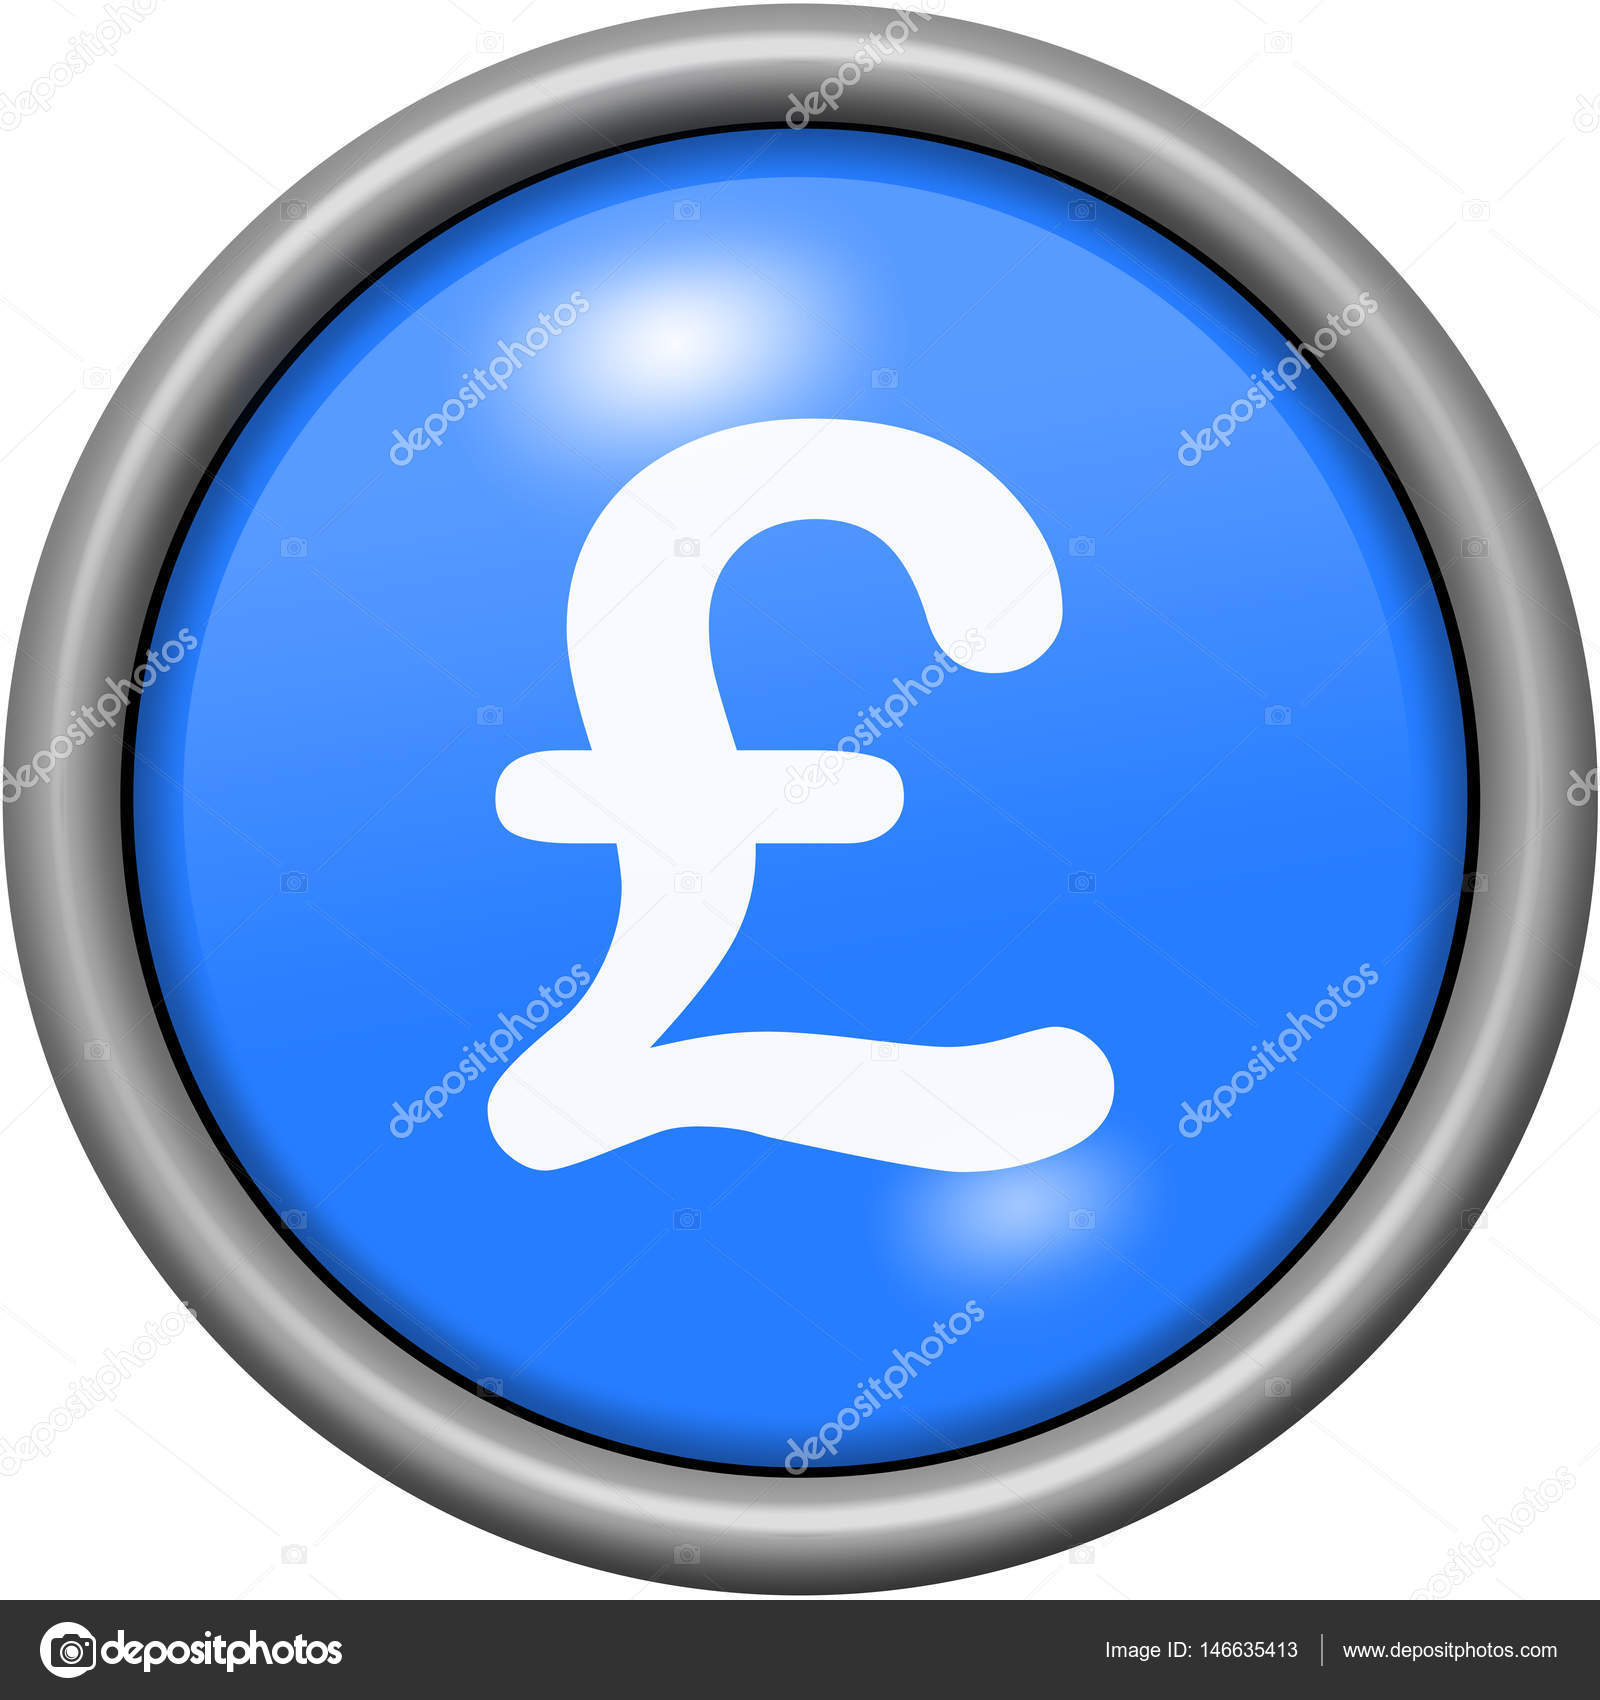 Blue Design Livre Sterling In Round 3d Button Stock Photo